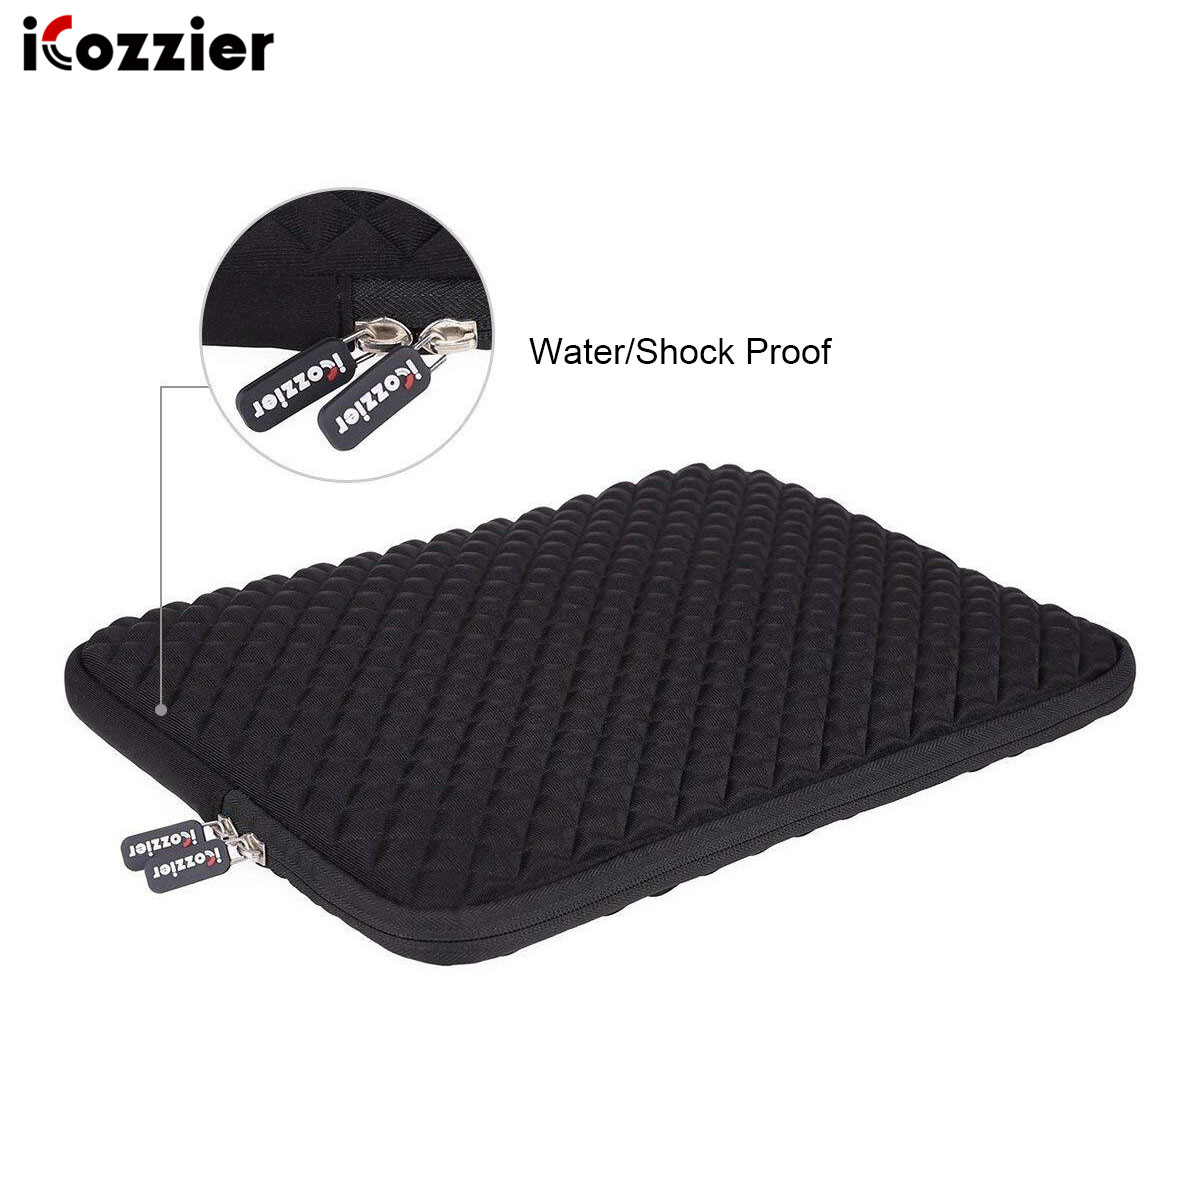 iCozzier <font><b>Laptop</b></font> portable Bag Sleeve Notebook <font><b>Case</b></font> for Dell HP Asus Lenovo Macbook 13 14 15 <font><b>15.6</b></font> inch Cover for Retina Pro <font><b>15.6</b></font> image